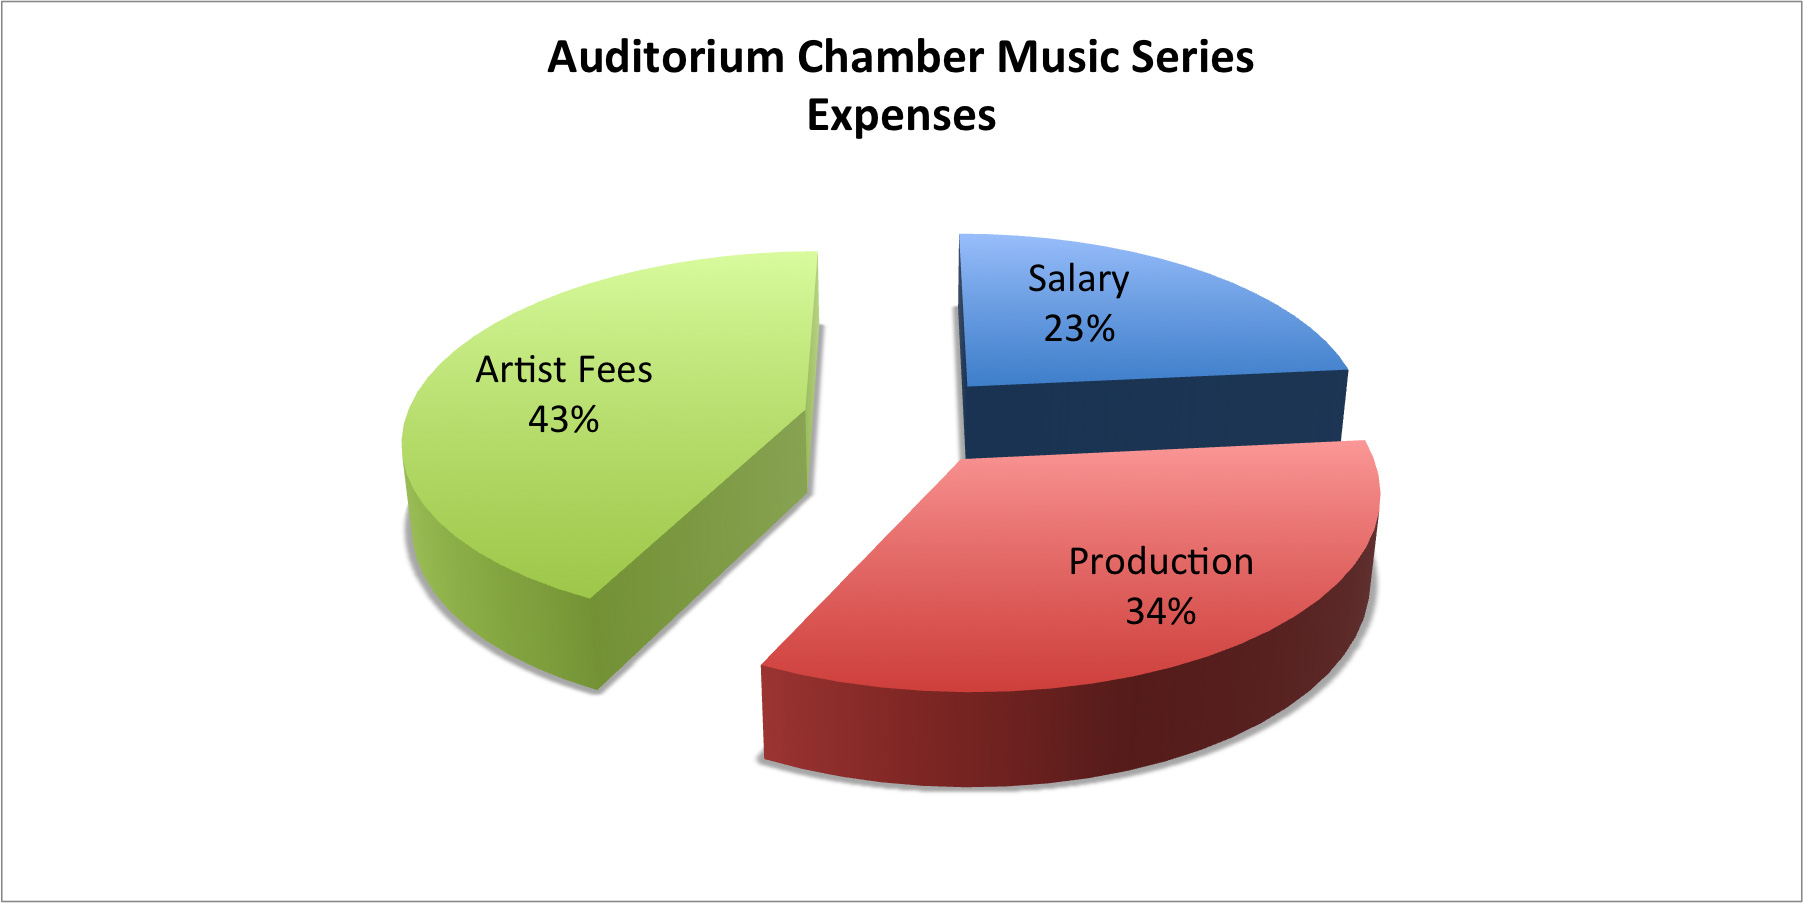 A graph of ACMS's expenses, showing 43 percent going toward artist fees, 23 percent for salaries and 34 percent for production costs.